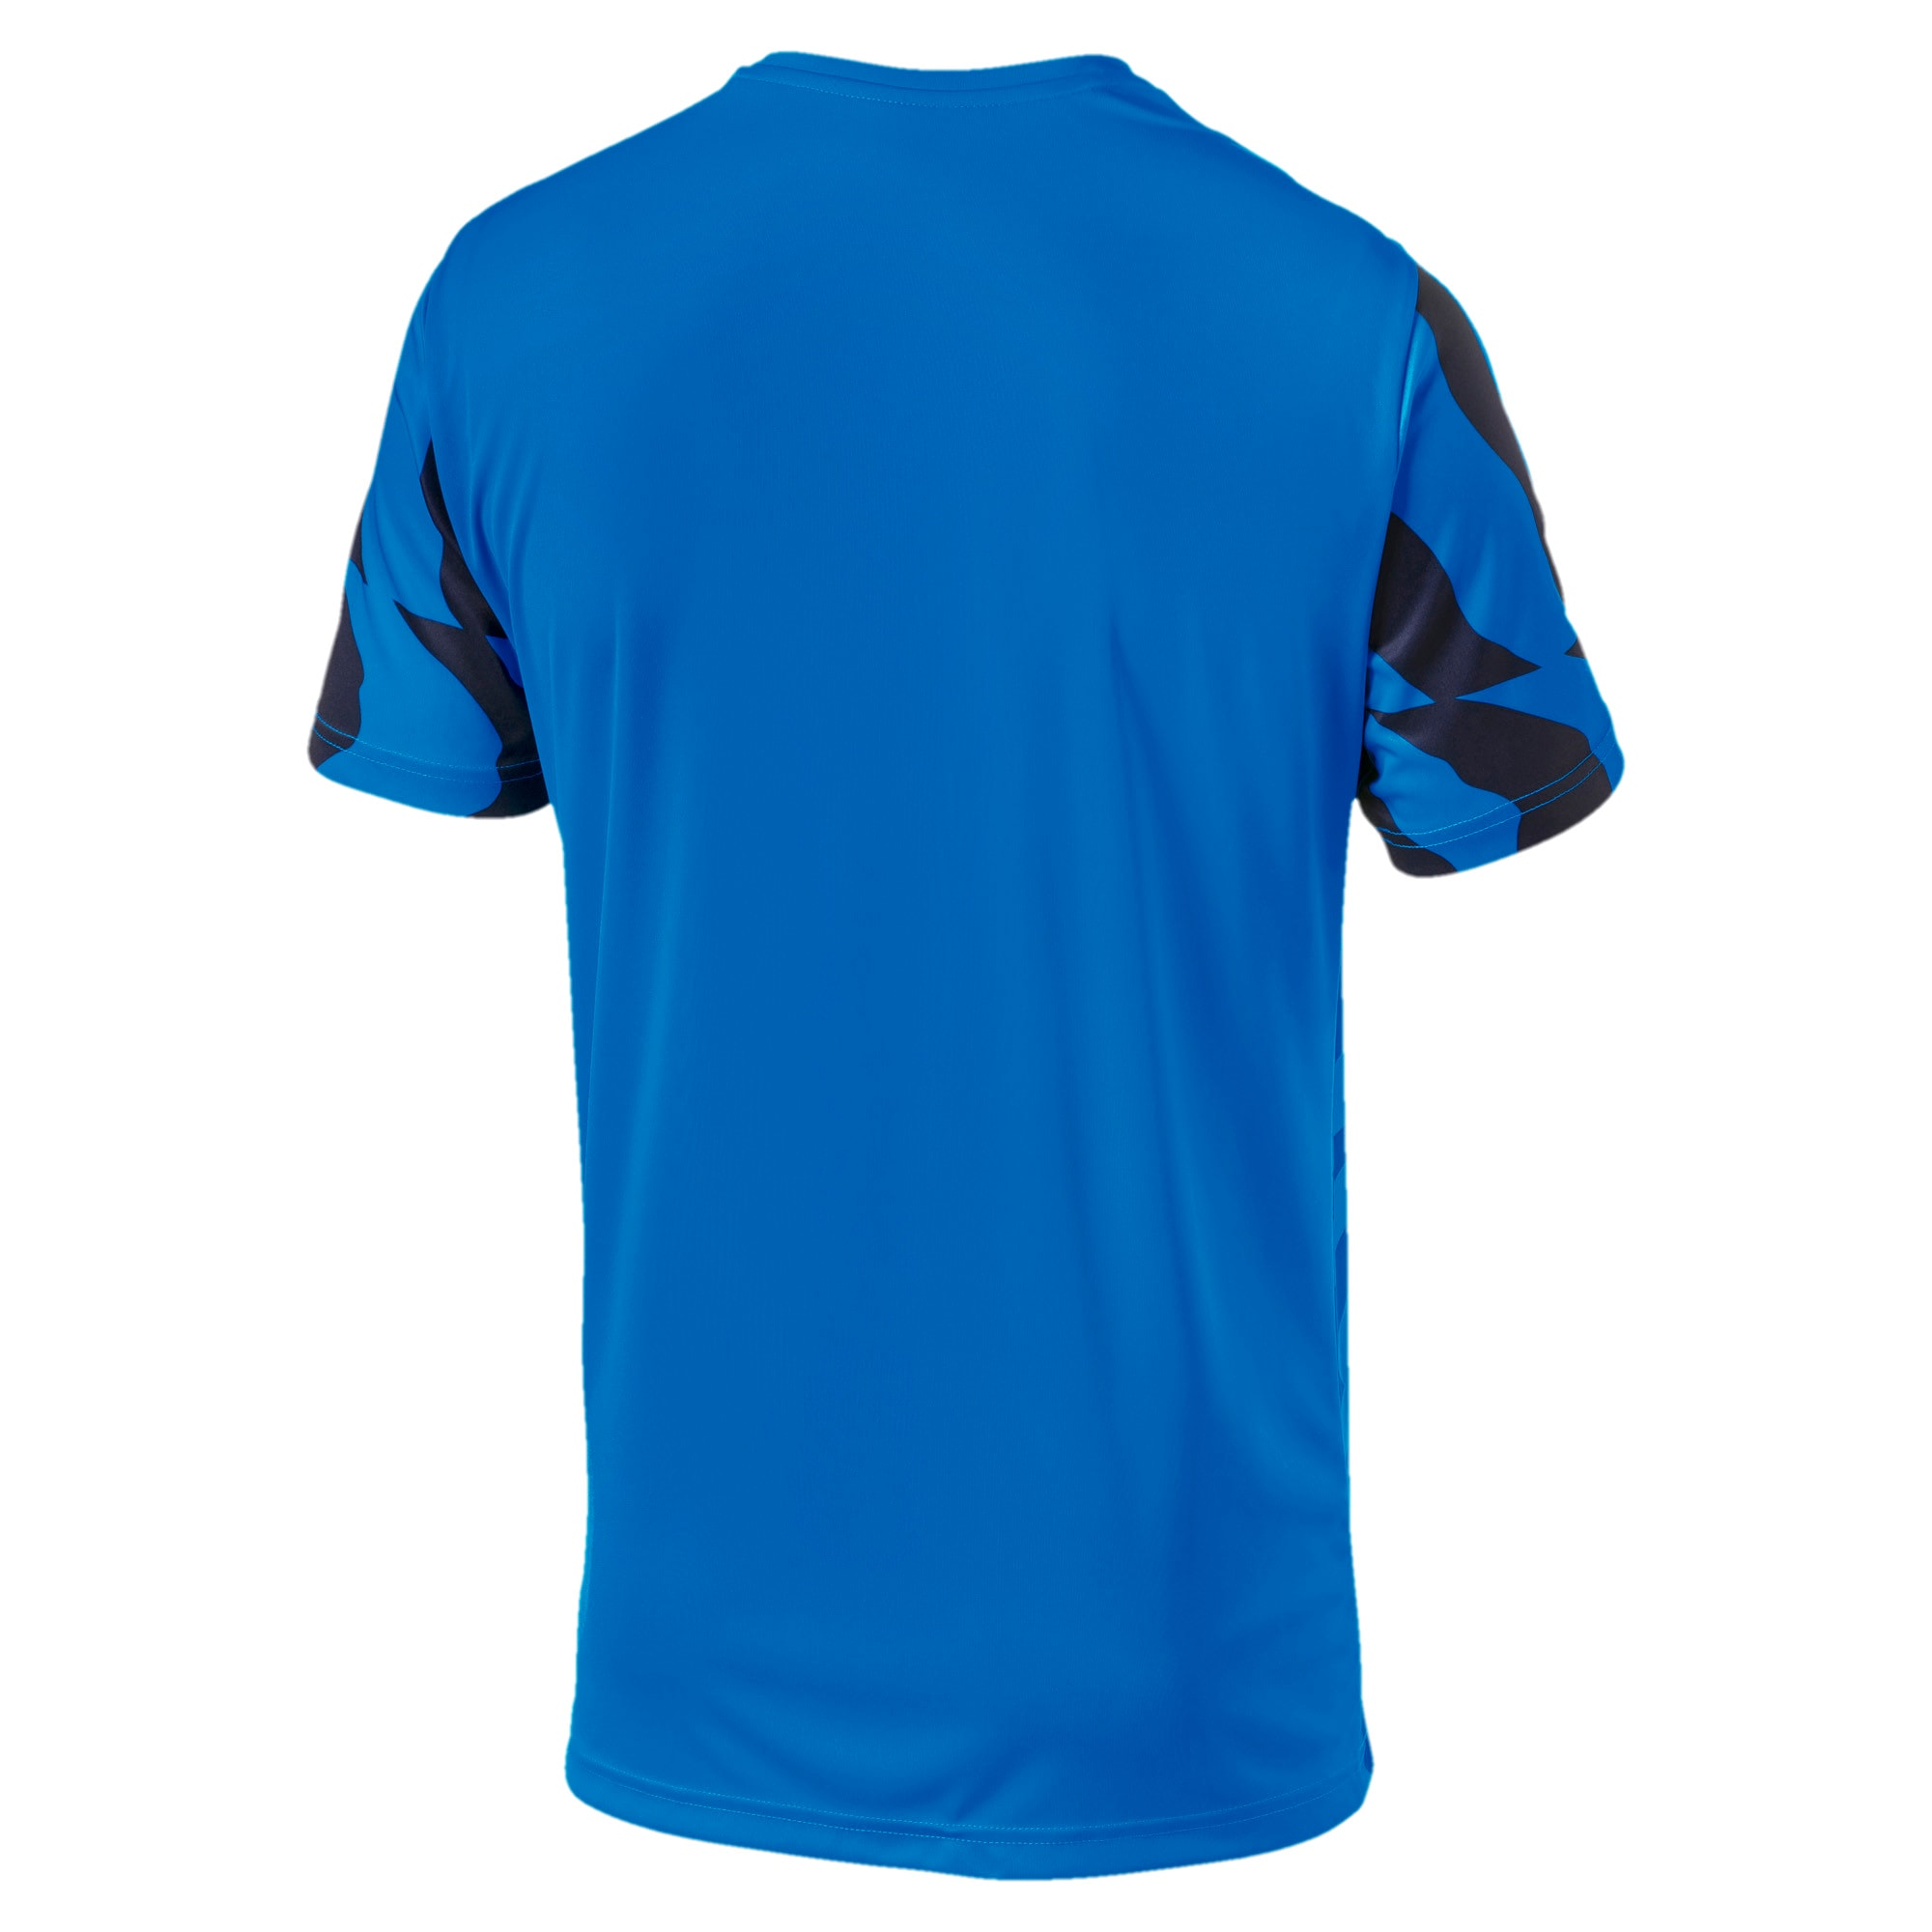 Thumbnail 5 of CUP Core Men's Football Jersey, Electric Blue-Puma White, medium